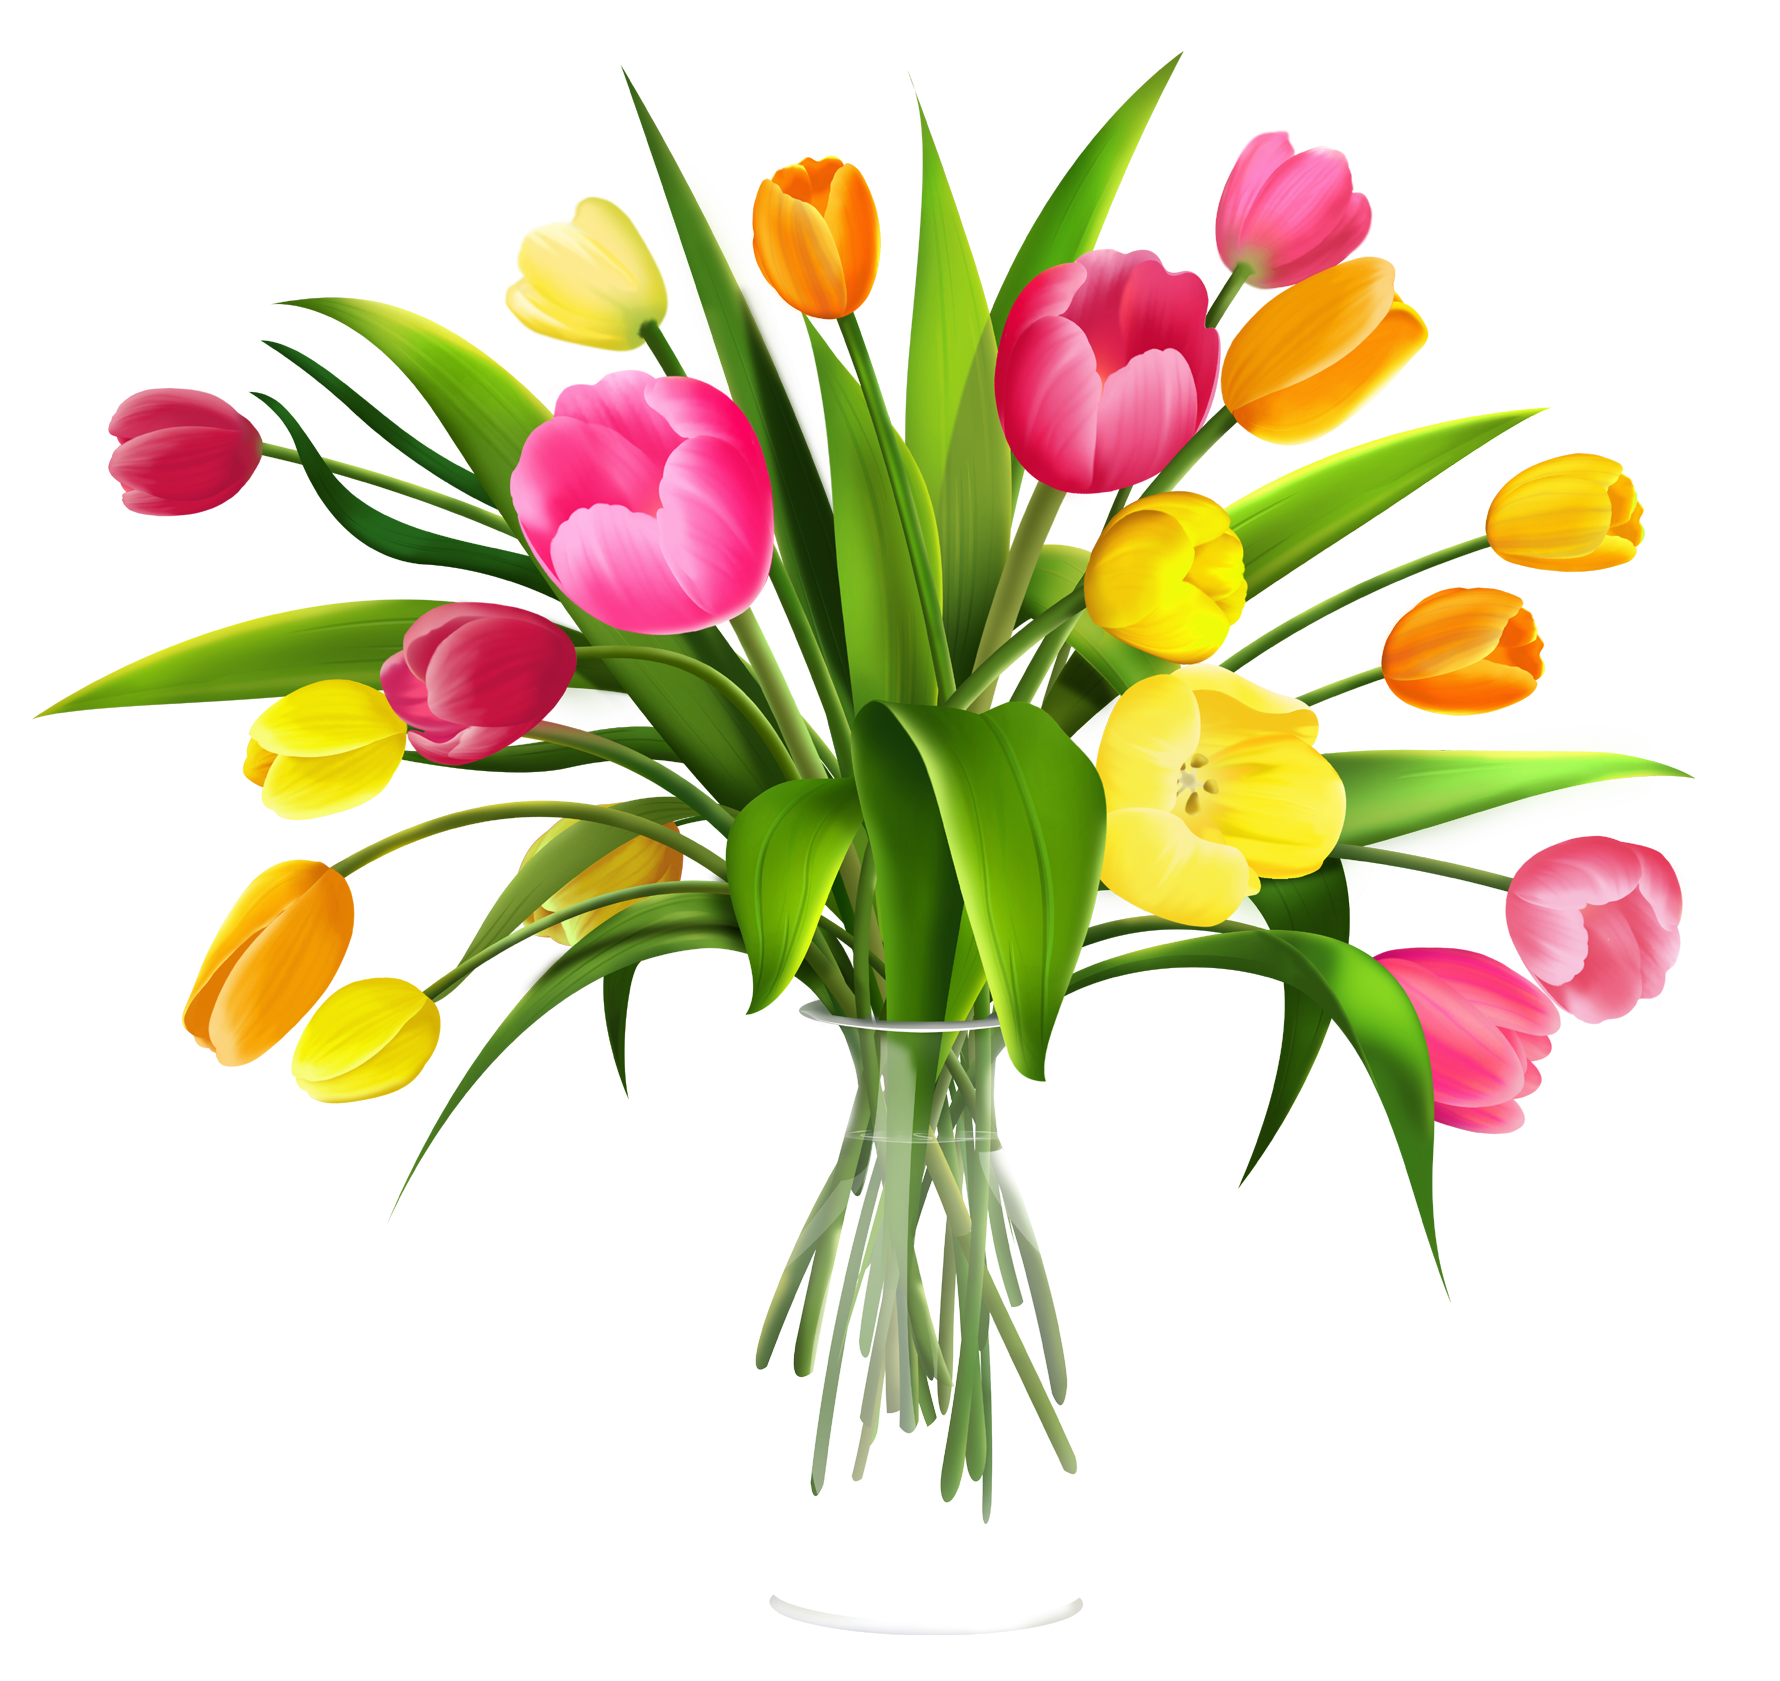 Clip Art Tulips - Cliparts.co